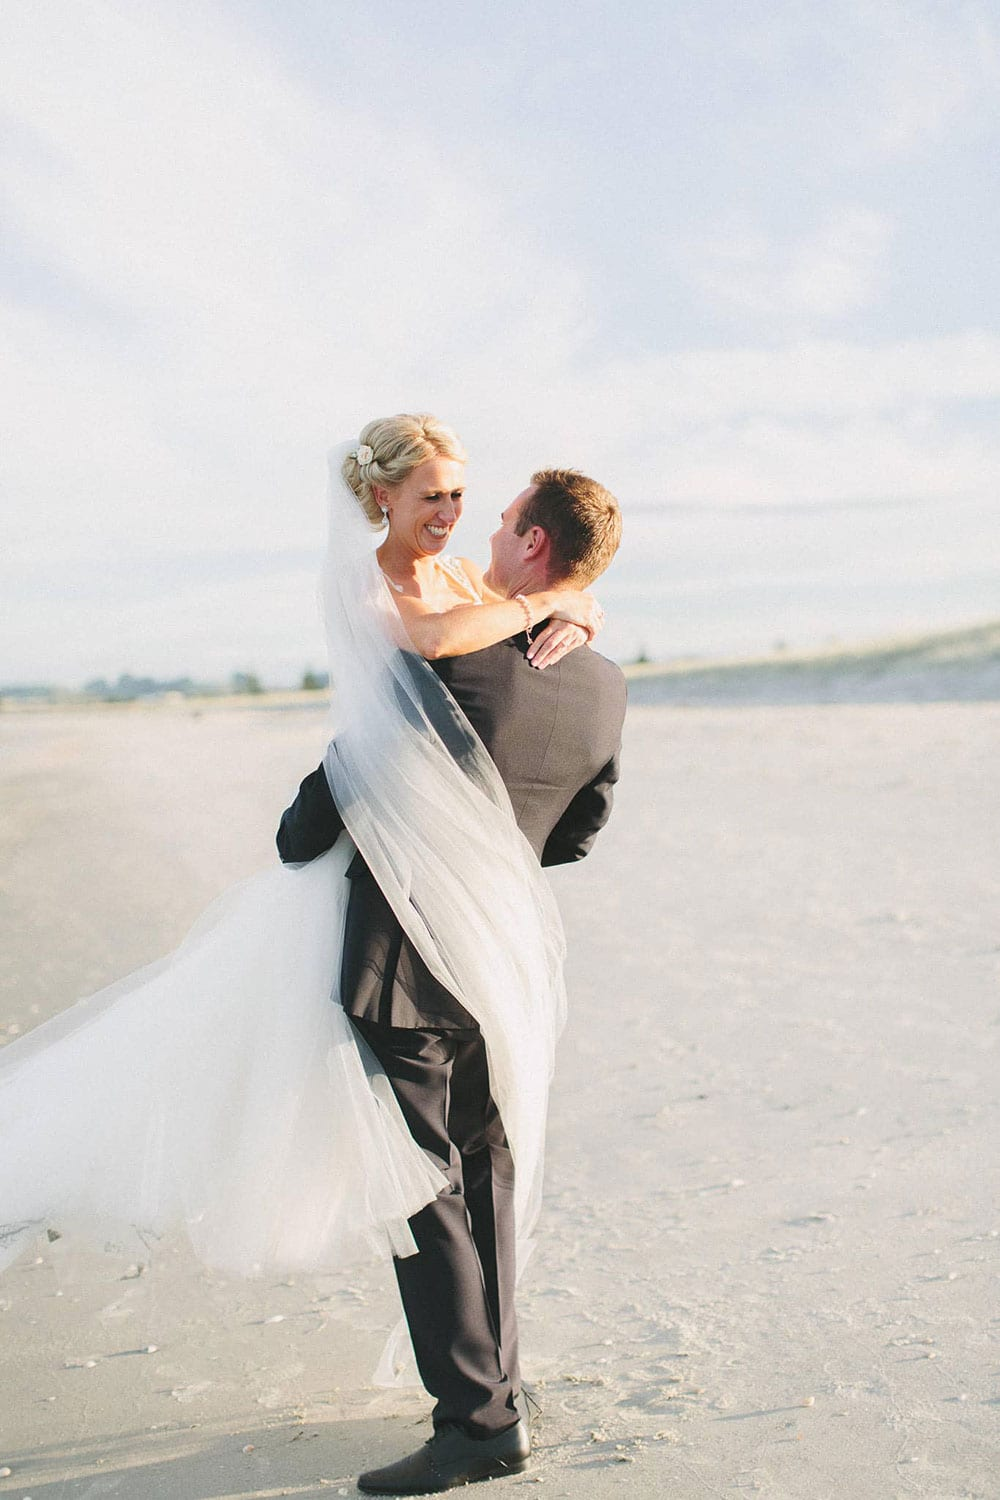 Real Weddings | Vinka Design | Real Brides Wearing Vinka Gowns | Louise and Ryan on the beach